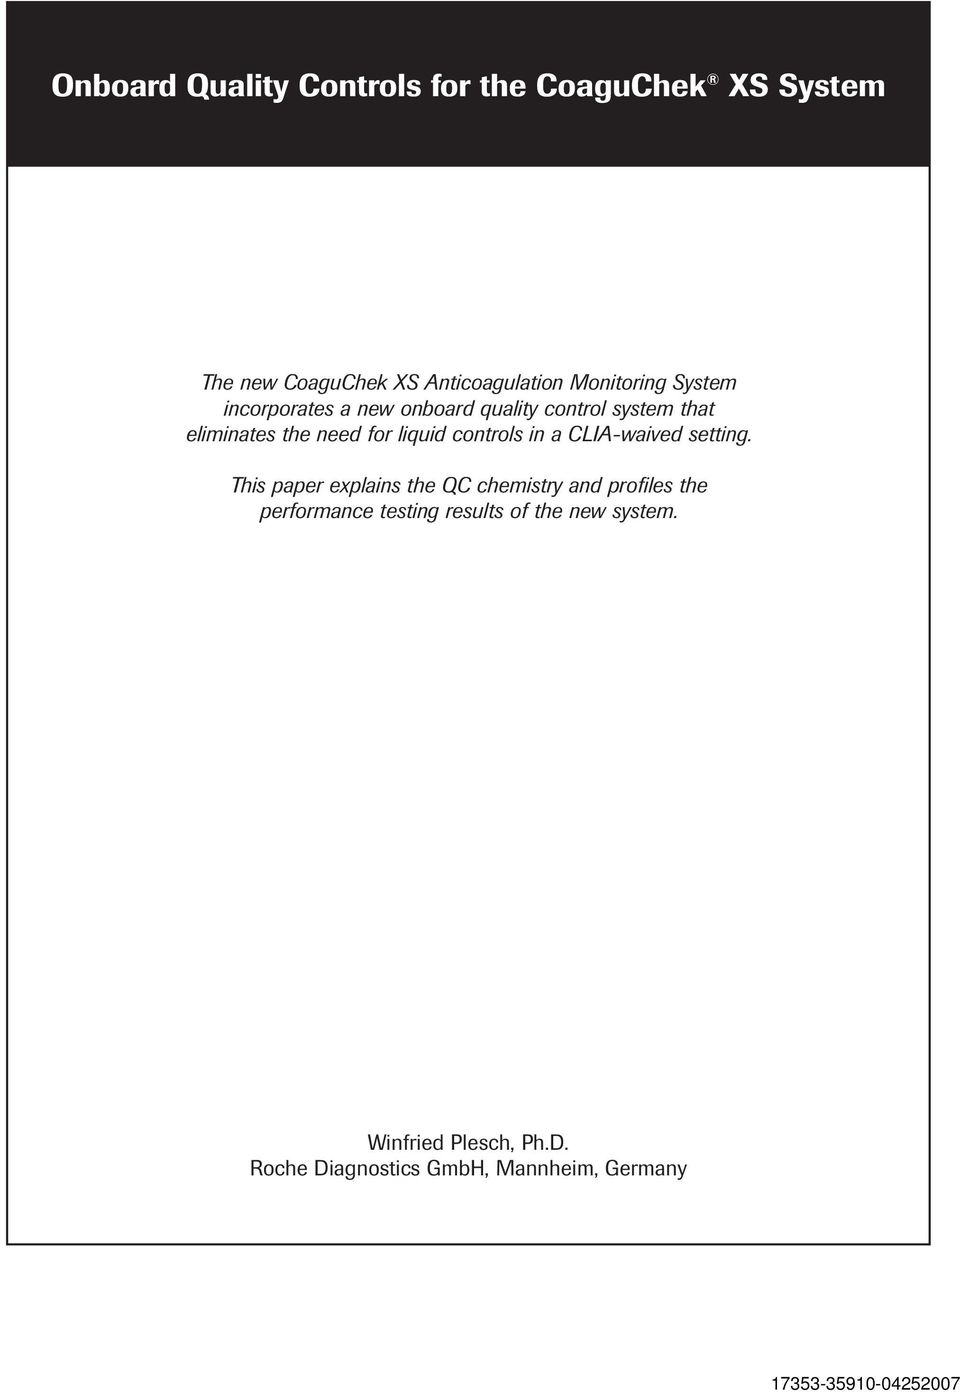 Onboard Quality Controls for the CoaguChek XS System - PDF